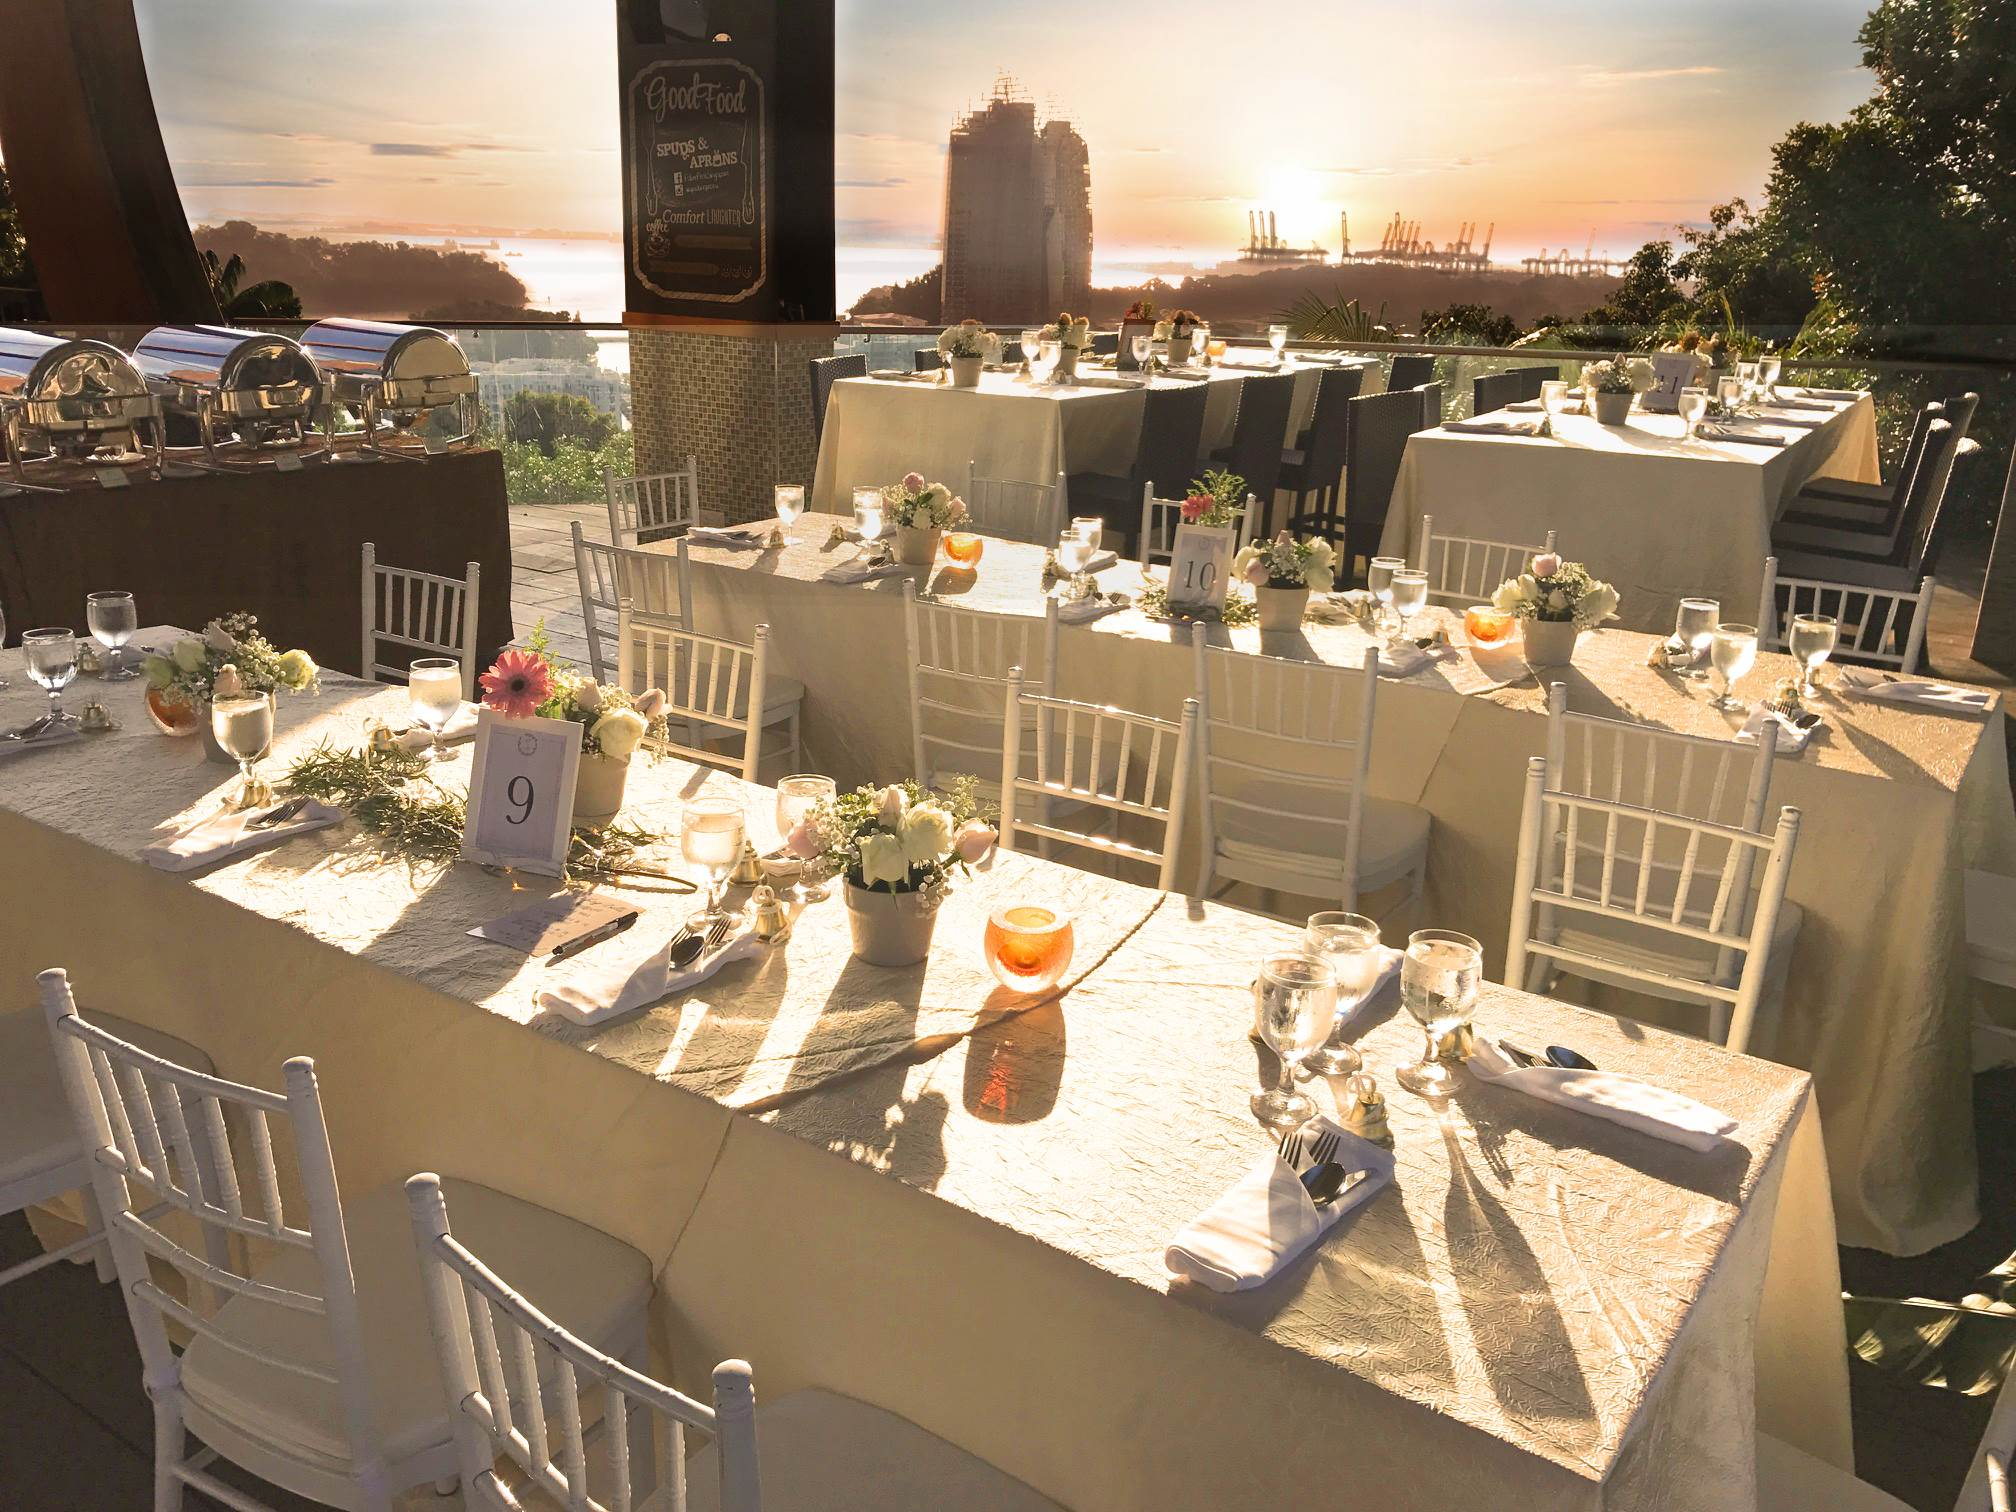 Arbora Hilltop Dining - For the outdoor lovers, revel in nature's best with an al fresco celebration, surrounded by breathtaking panoramic views, comforting sea breeze and lush greenery.